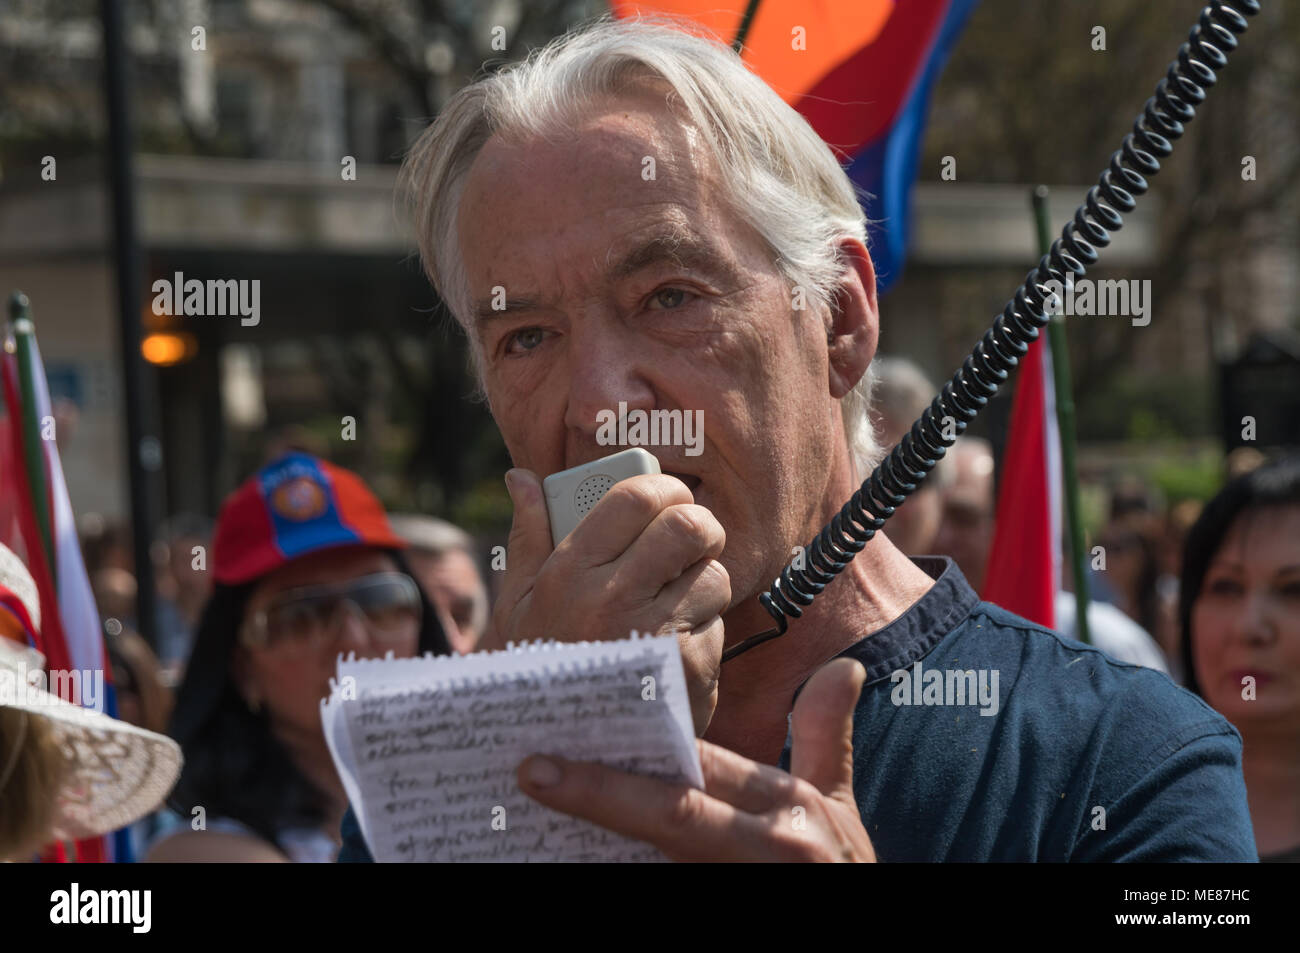 London, UK. 21st April 2018. Dirk Campbell, the father of Anna Campbell, a British volunteer killed fighting for Afrin in the Kurdish YPJ speaks to Armenians meeting to march through London from Marble Arch to the Cenotaph at the start of a series of events commemorating the 103rd anniversary of the beginning of the Armenian Genocide. They demand the UK to follow the lead of many other countries and recognise the Armenian genocide. Credit: Peter Marshall/Alamy Live News - Stock Image